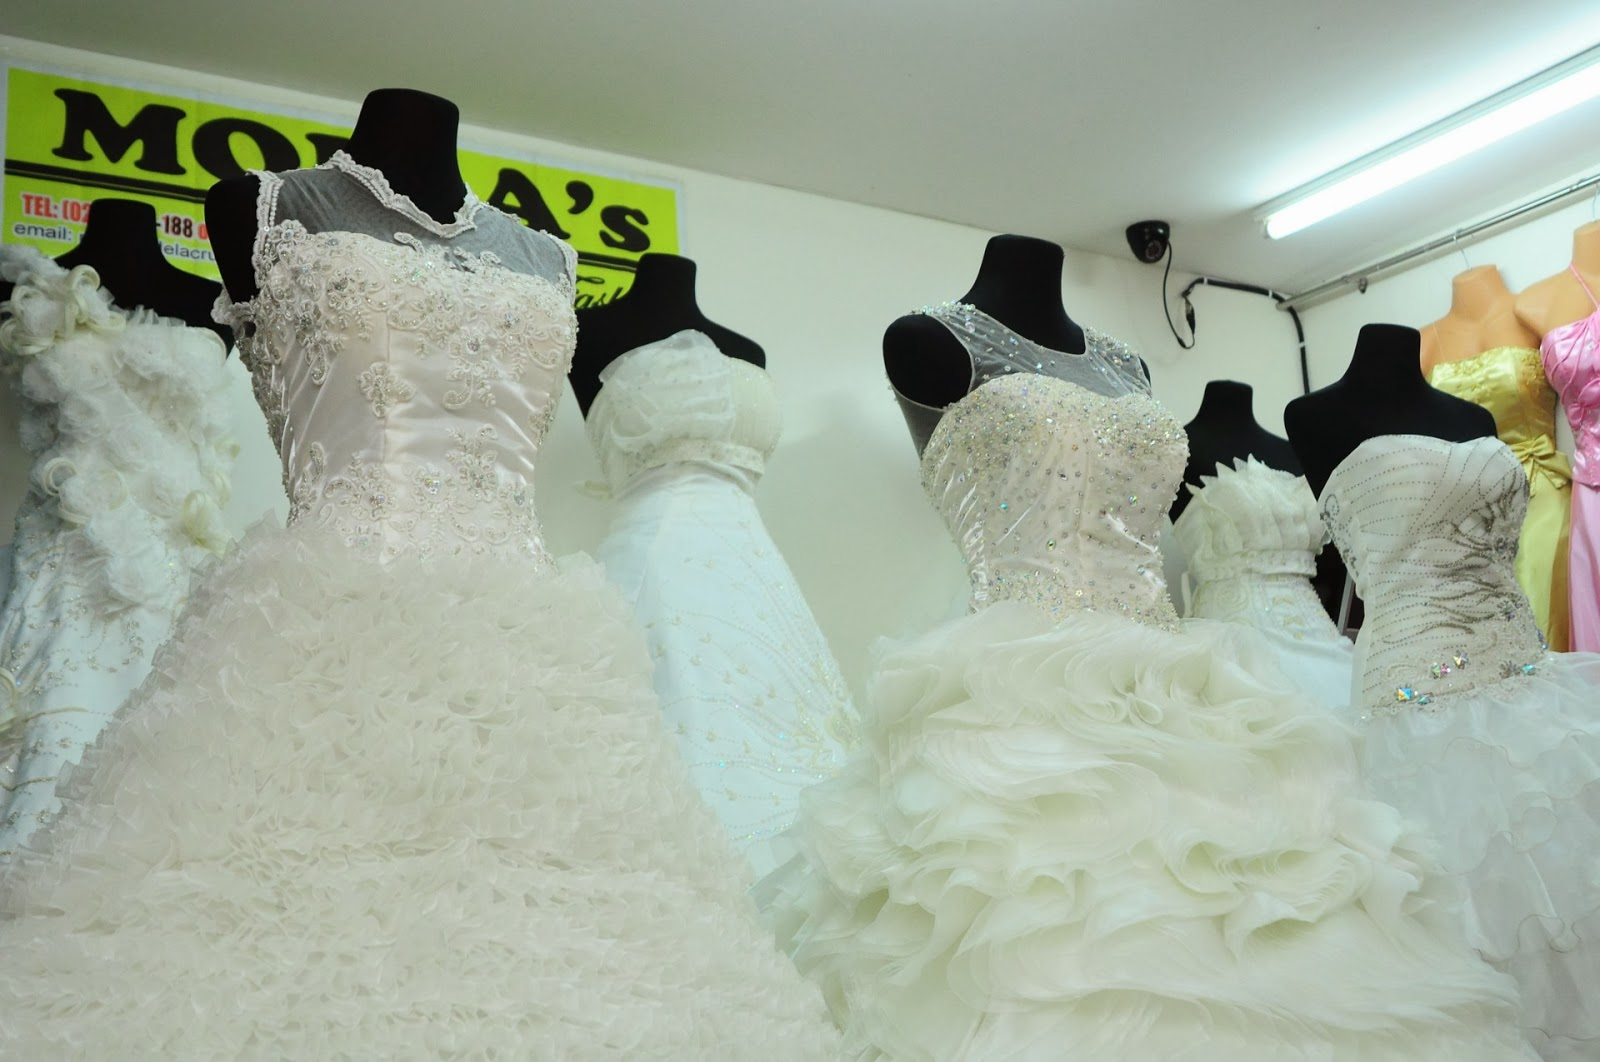 Wedding Giveaways Ideas Divisoria : Wedding Planning Adventure: Wedding Gowns in Divisoria - The ...